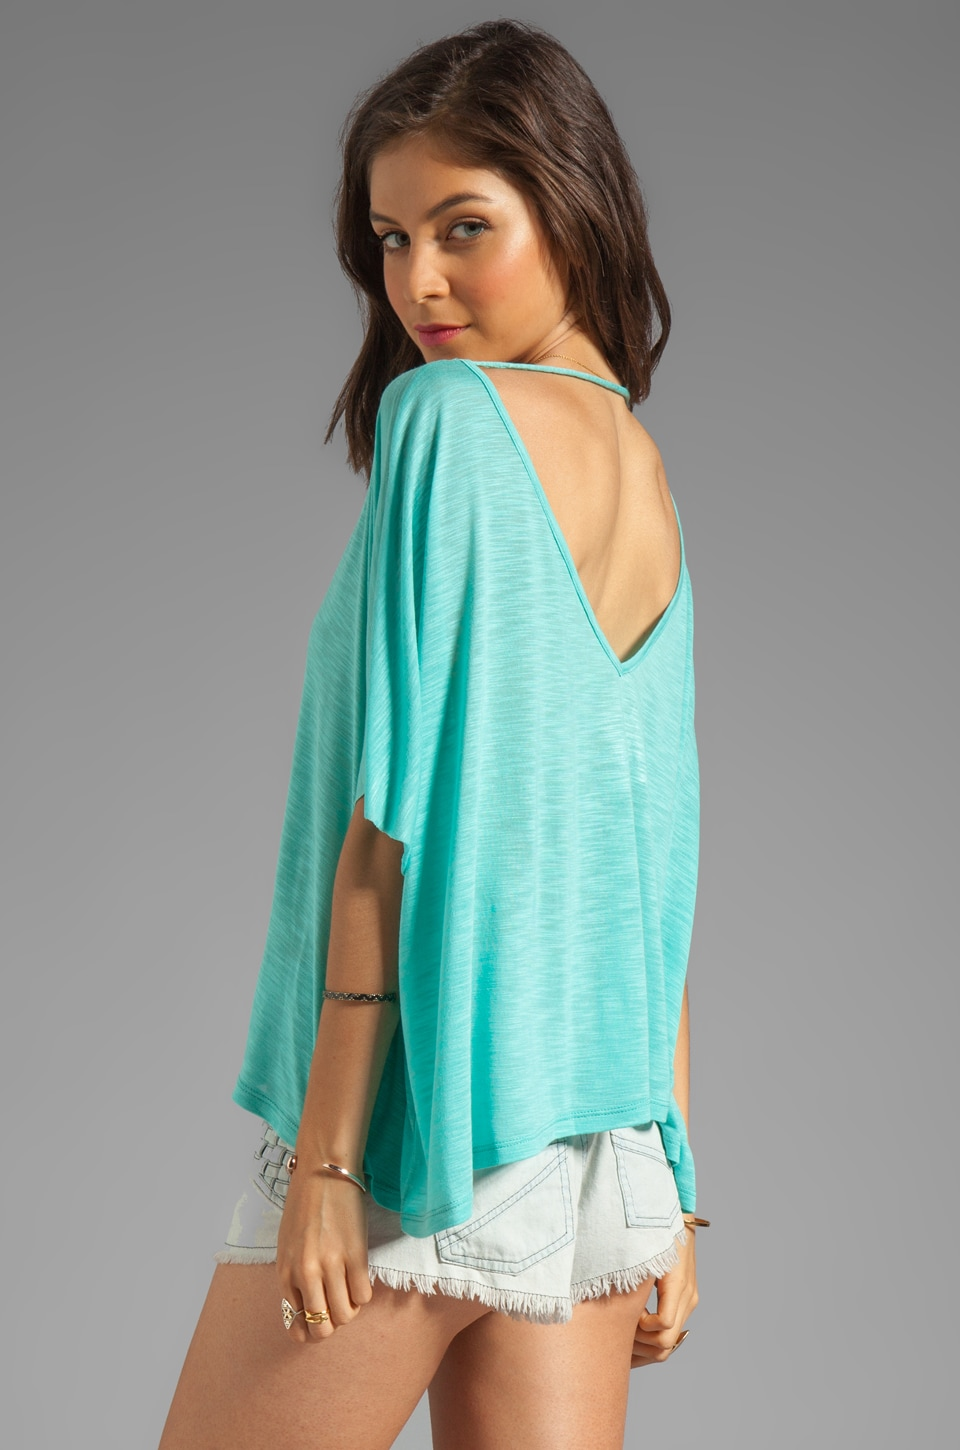 Blue Life Cropped Double V Neck Top in Agave